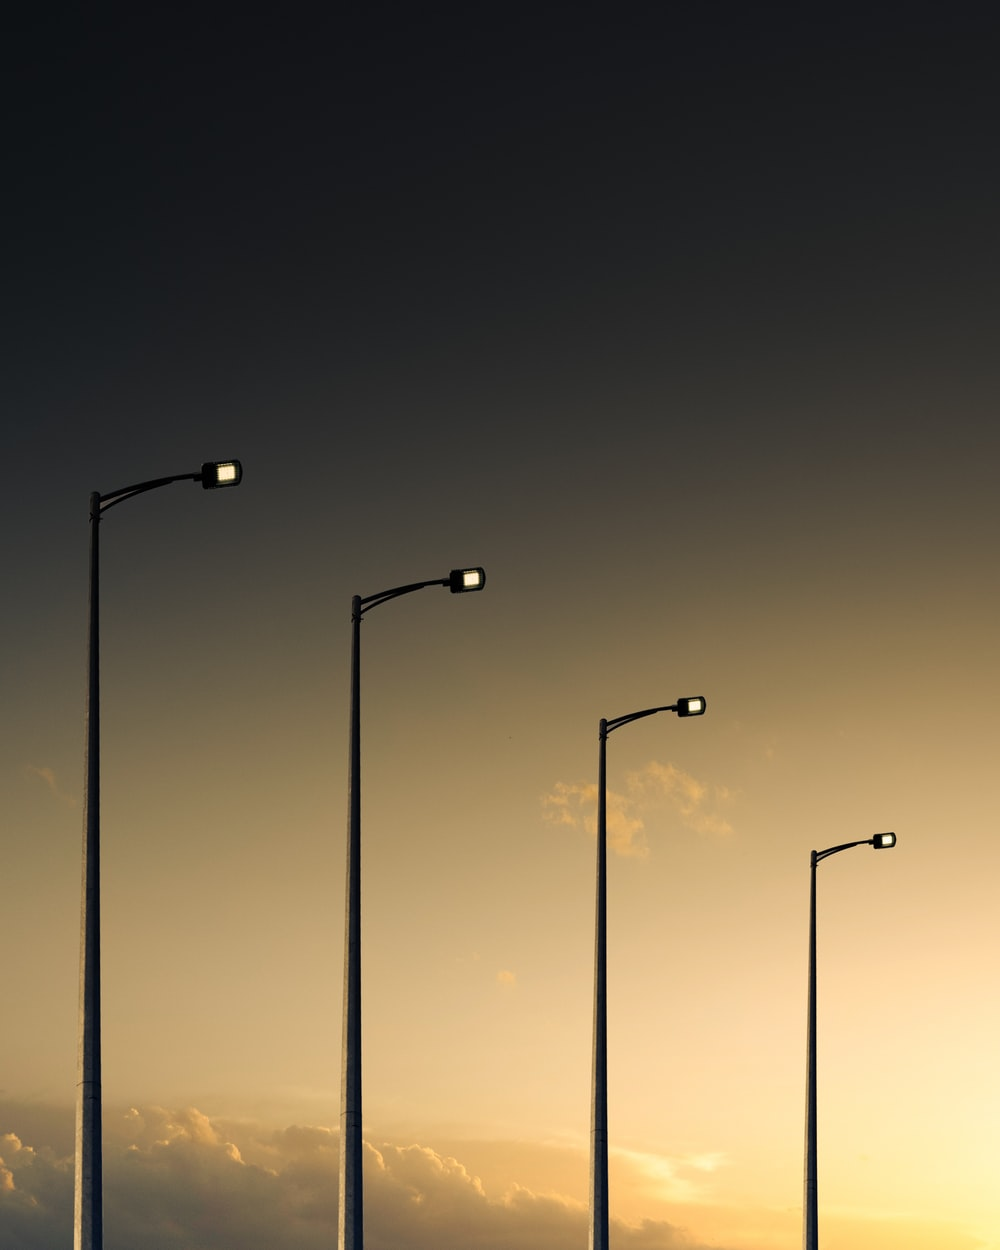 3 light post light turned on during night time